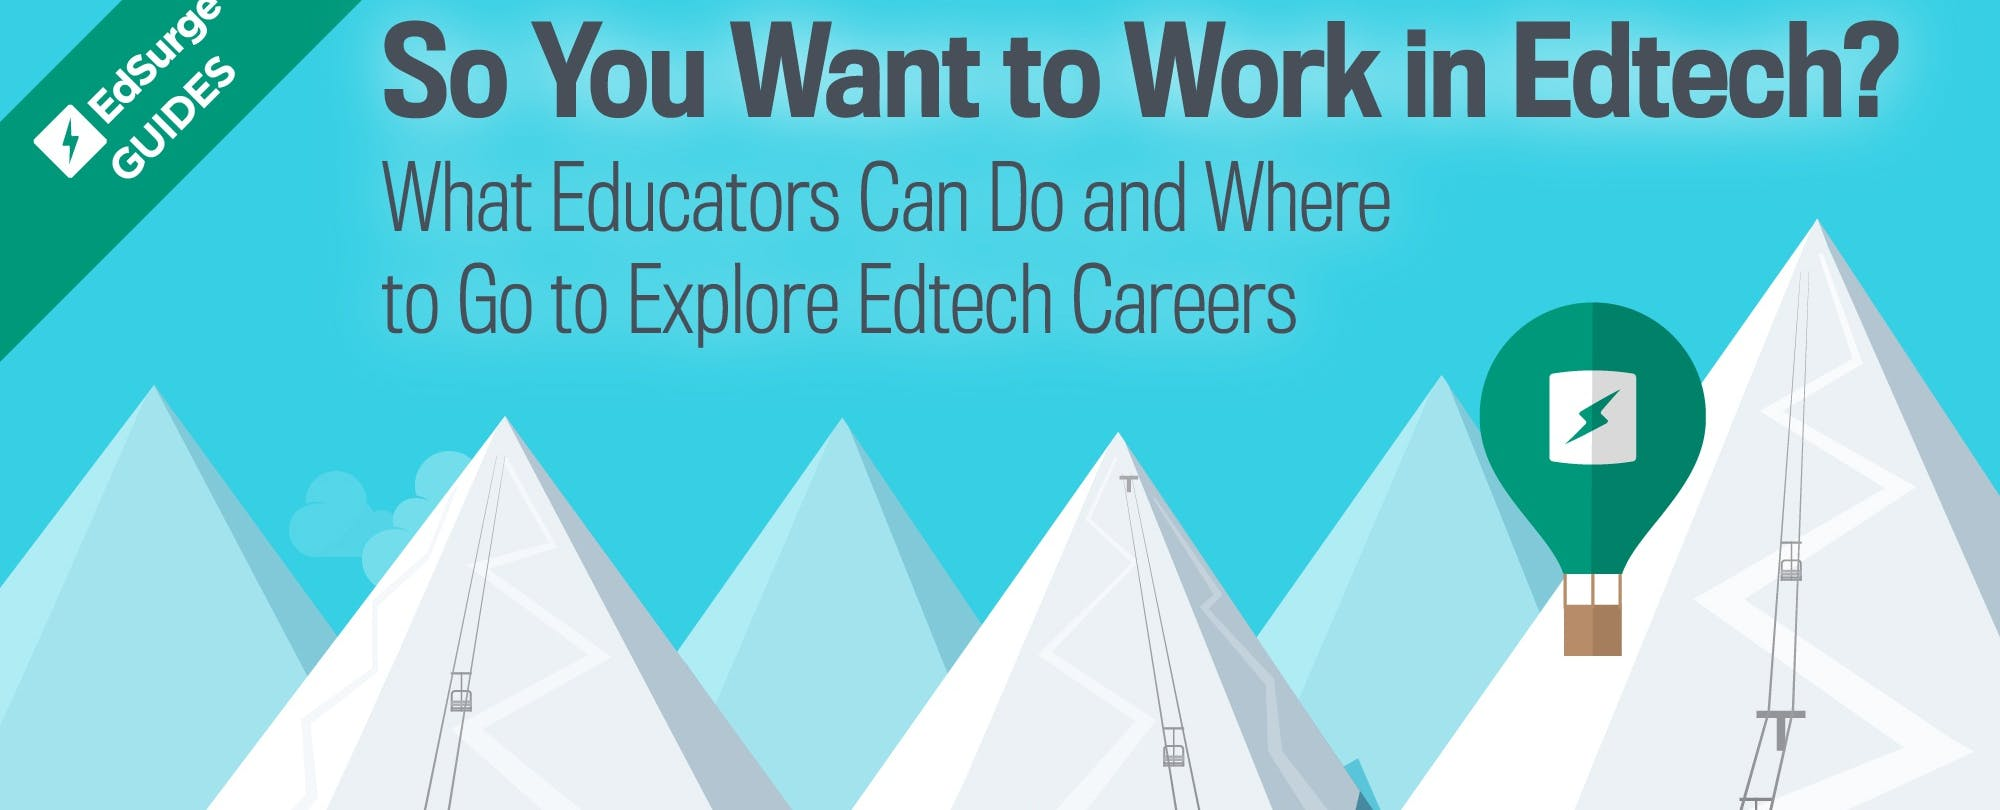 So You Want to Work in Edtech?